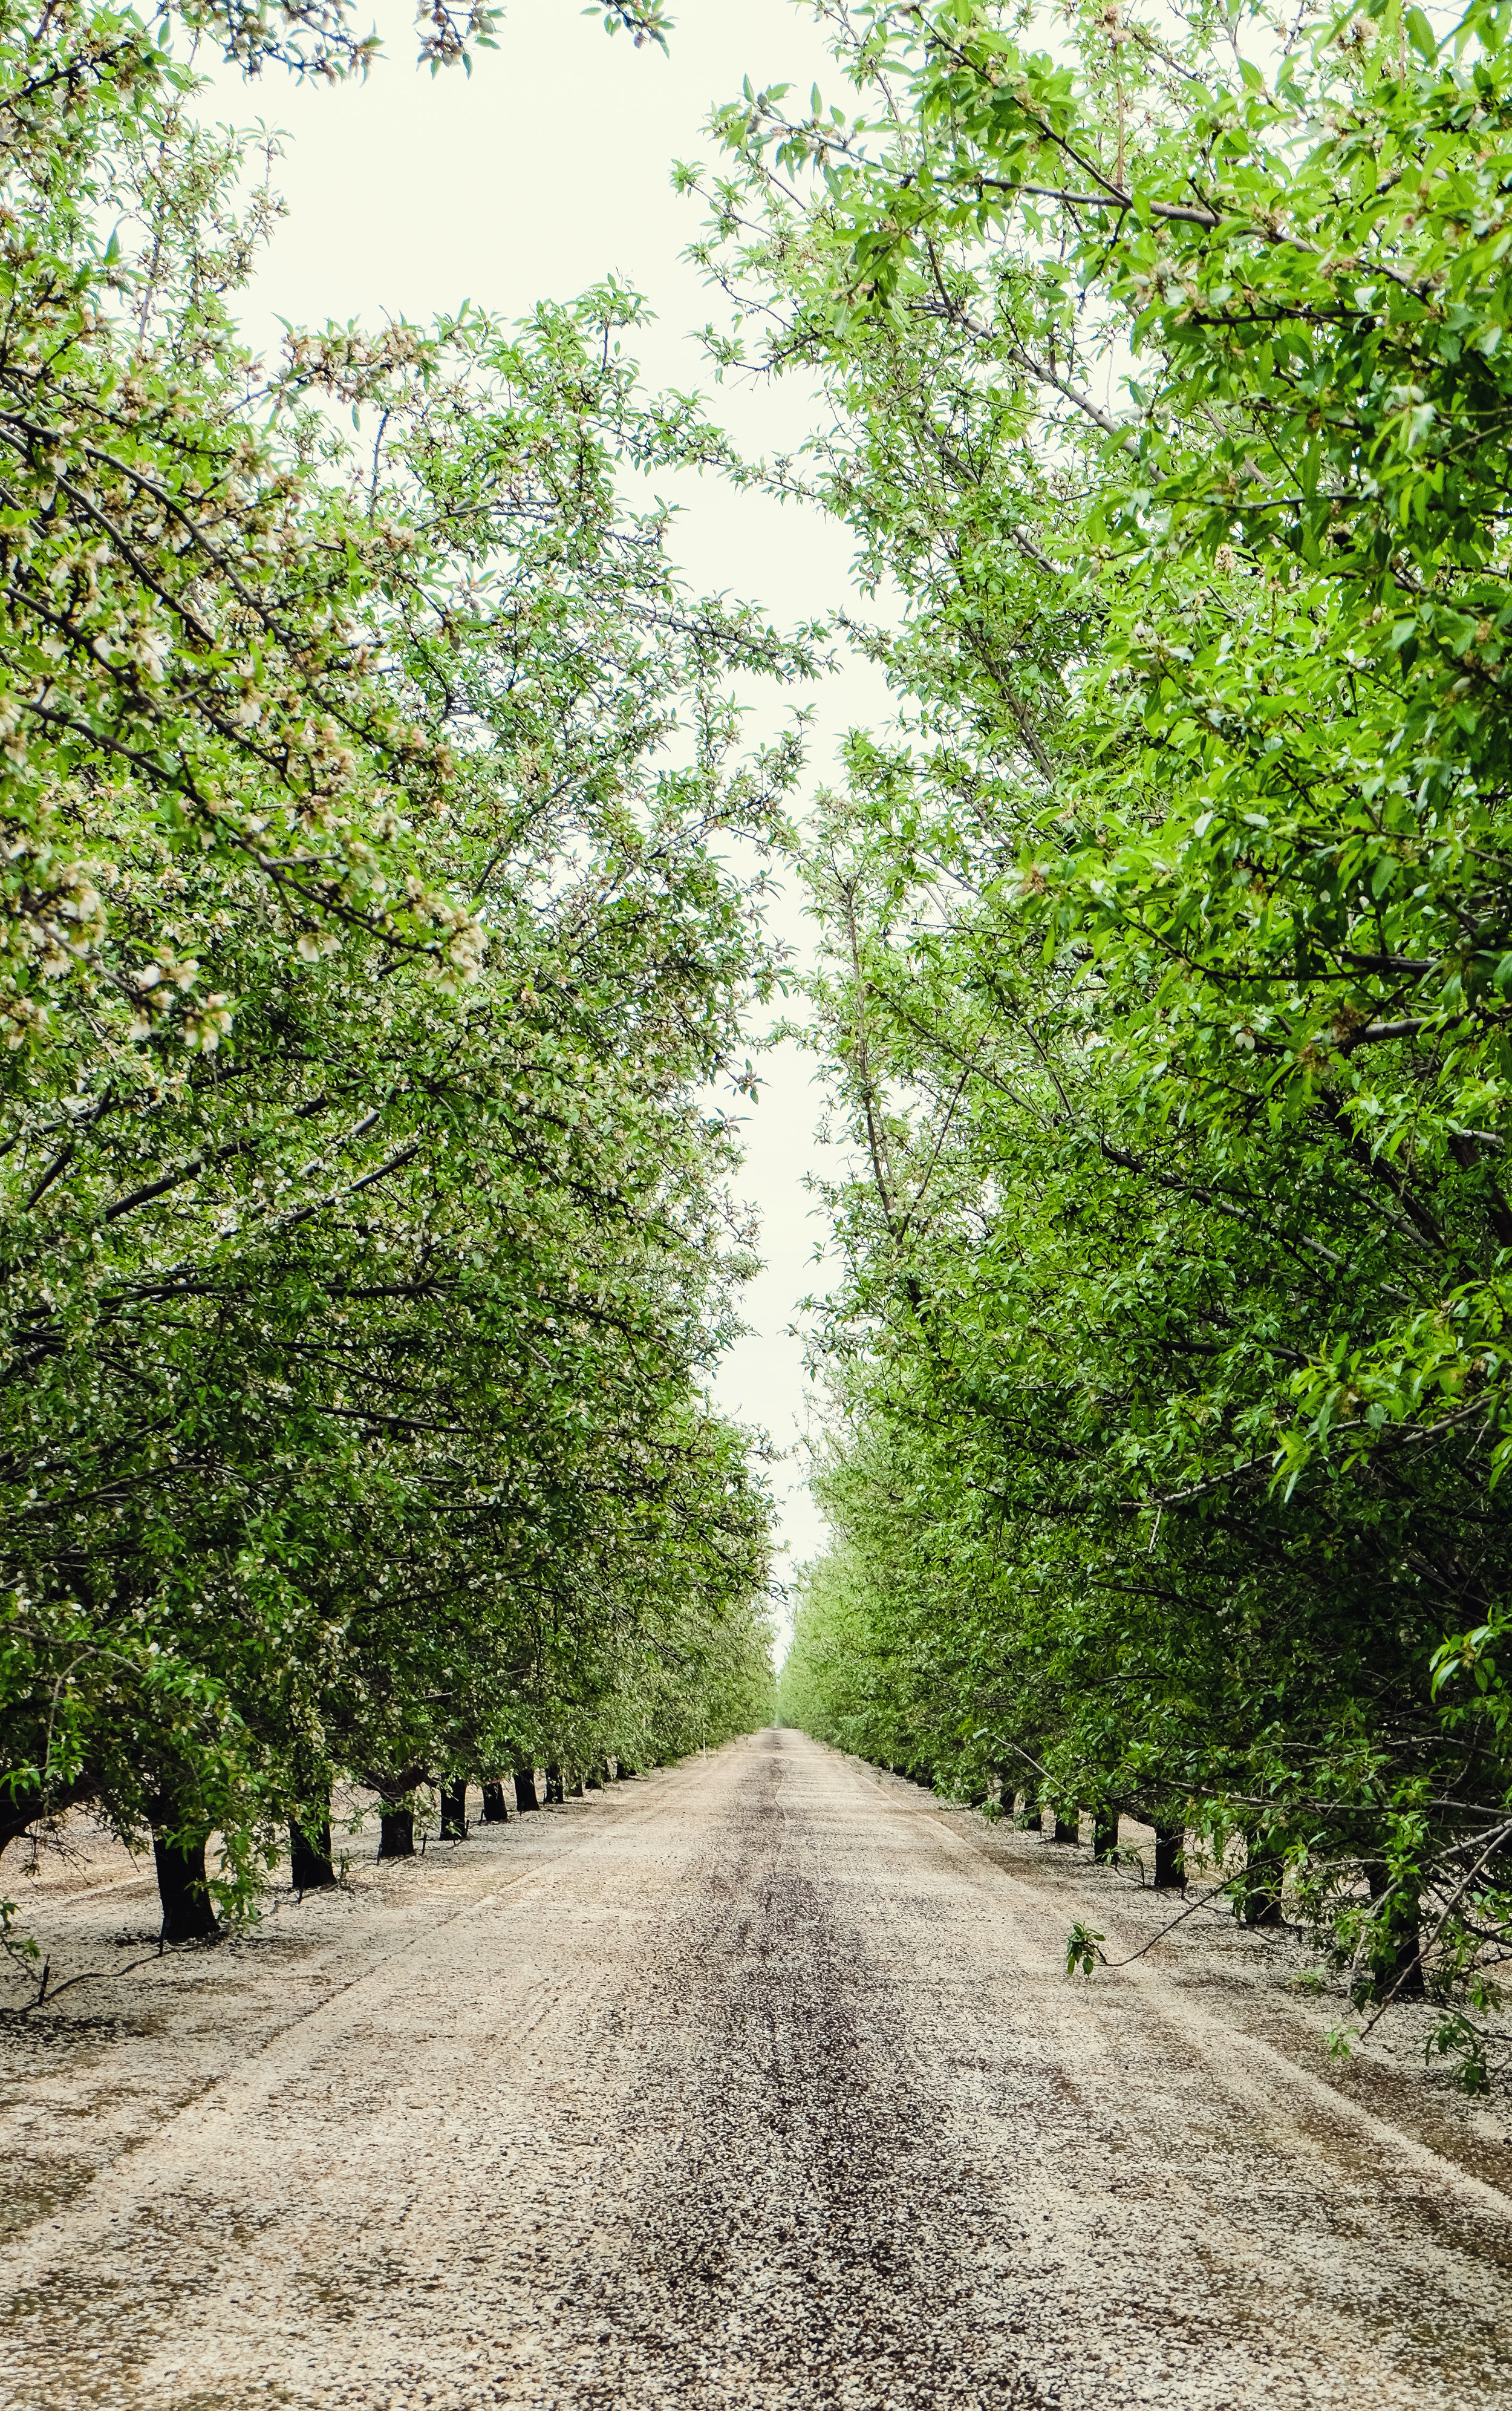 ON THE WAY TO MONTEREY, WE Got lost on Twisselman Road in Lost Hills, CA where we SPOTTED AND STOPPED FOR this beautiful,blooming Pistachio Orchard.